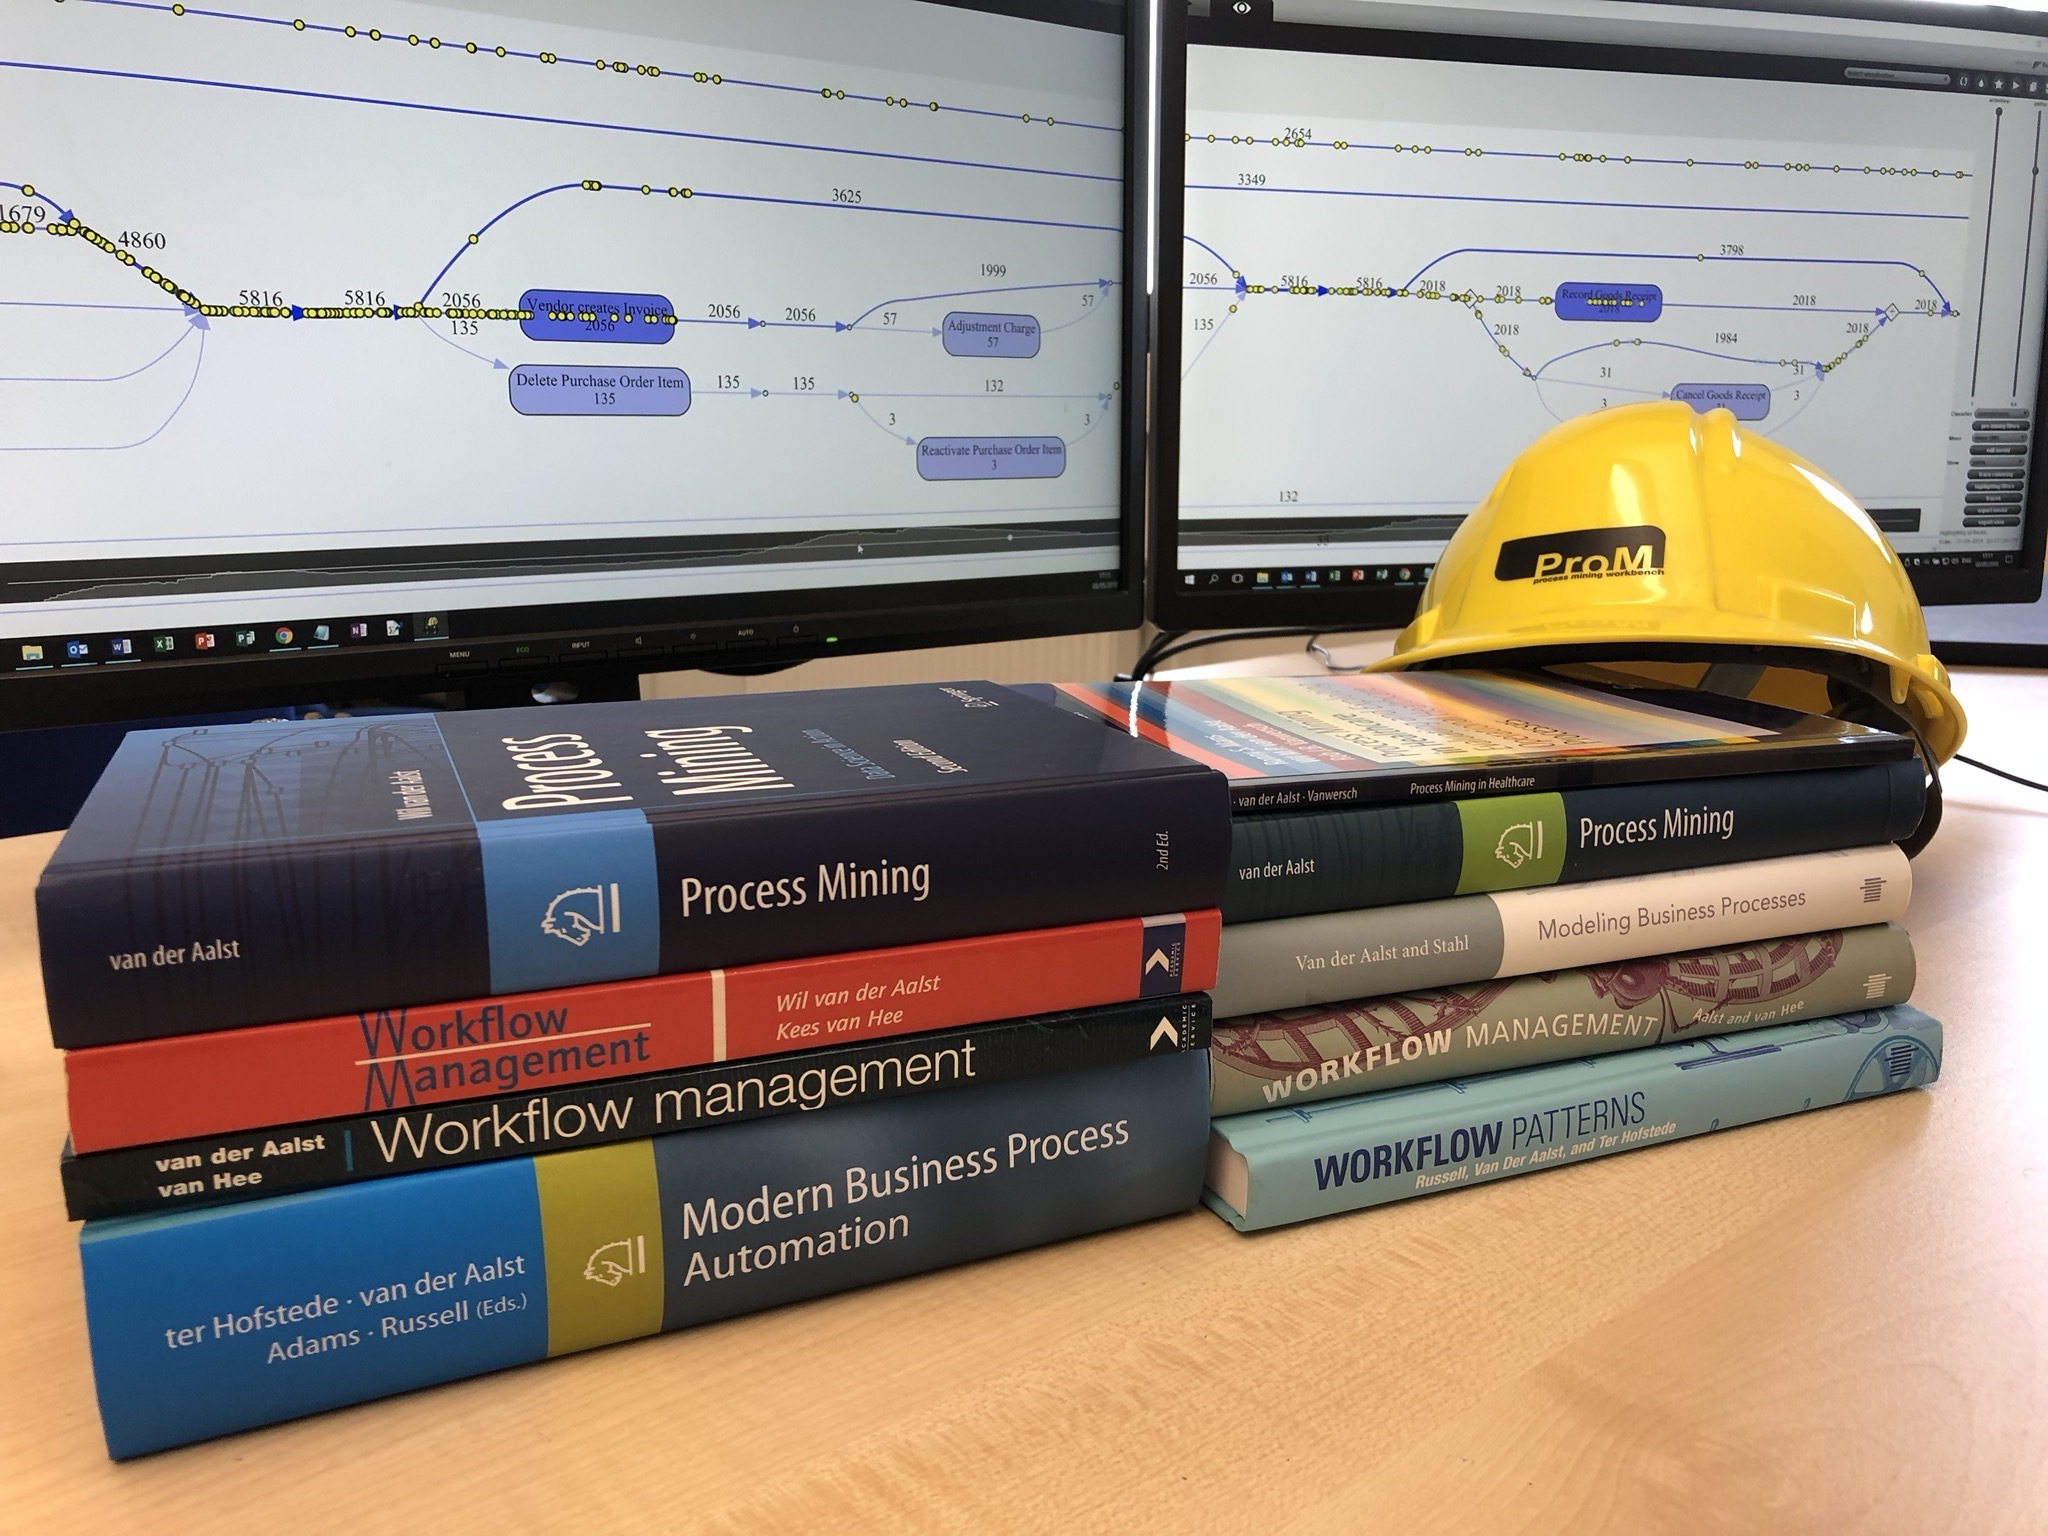 Books about process mining and in the background two monitors